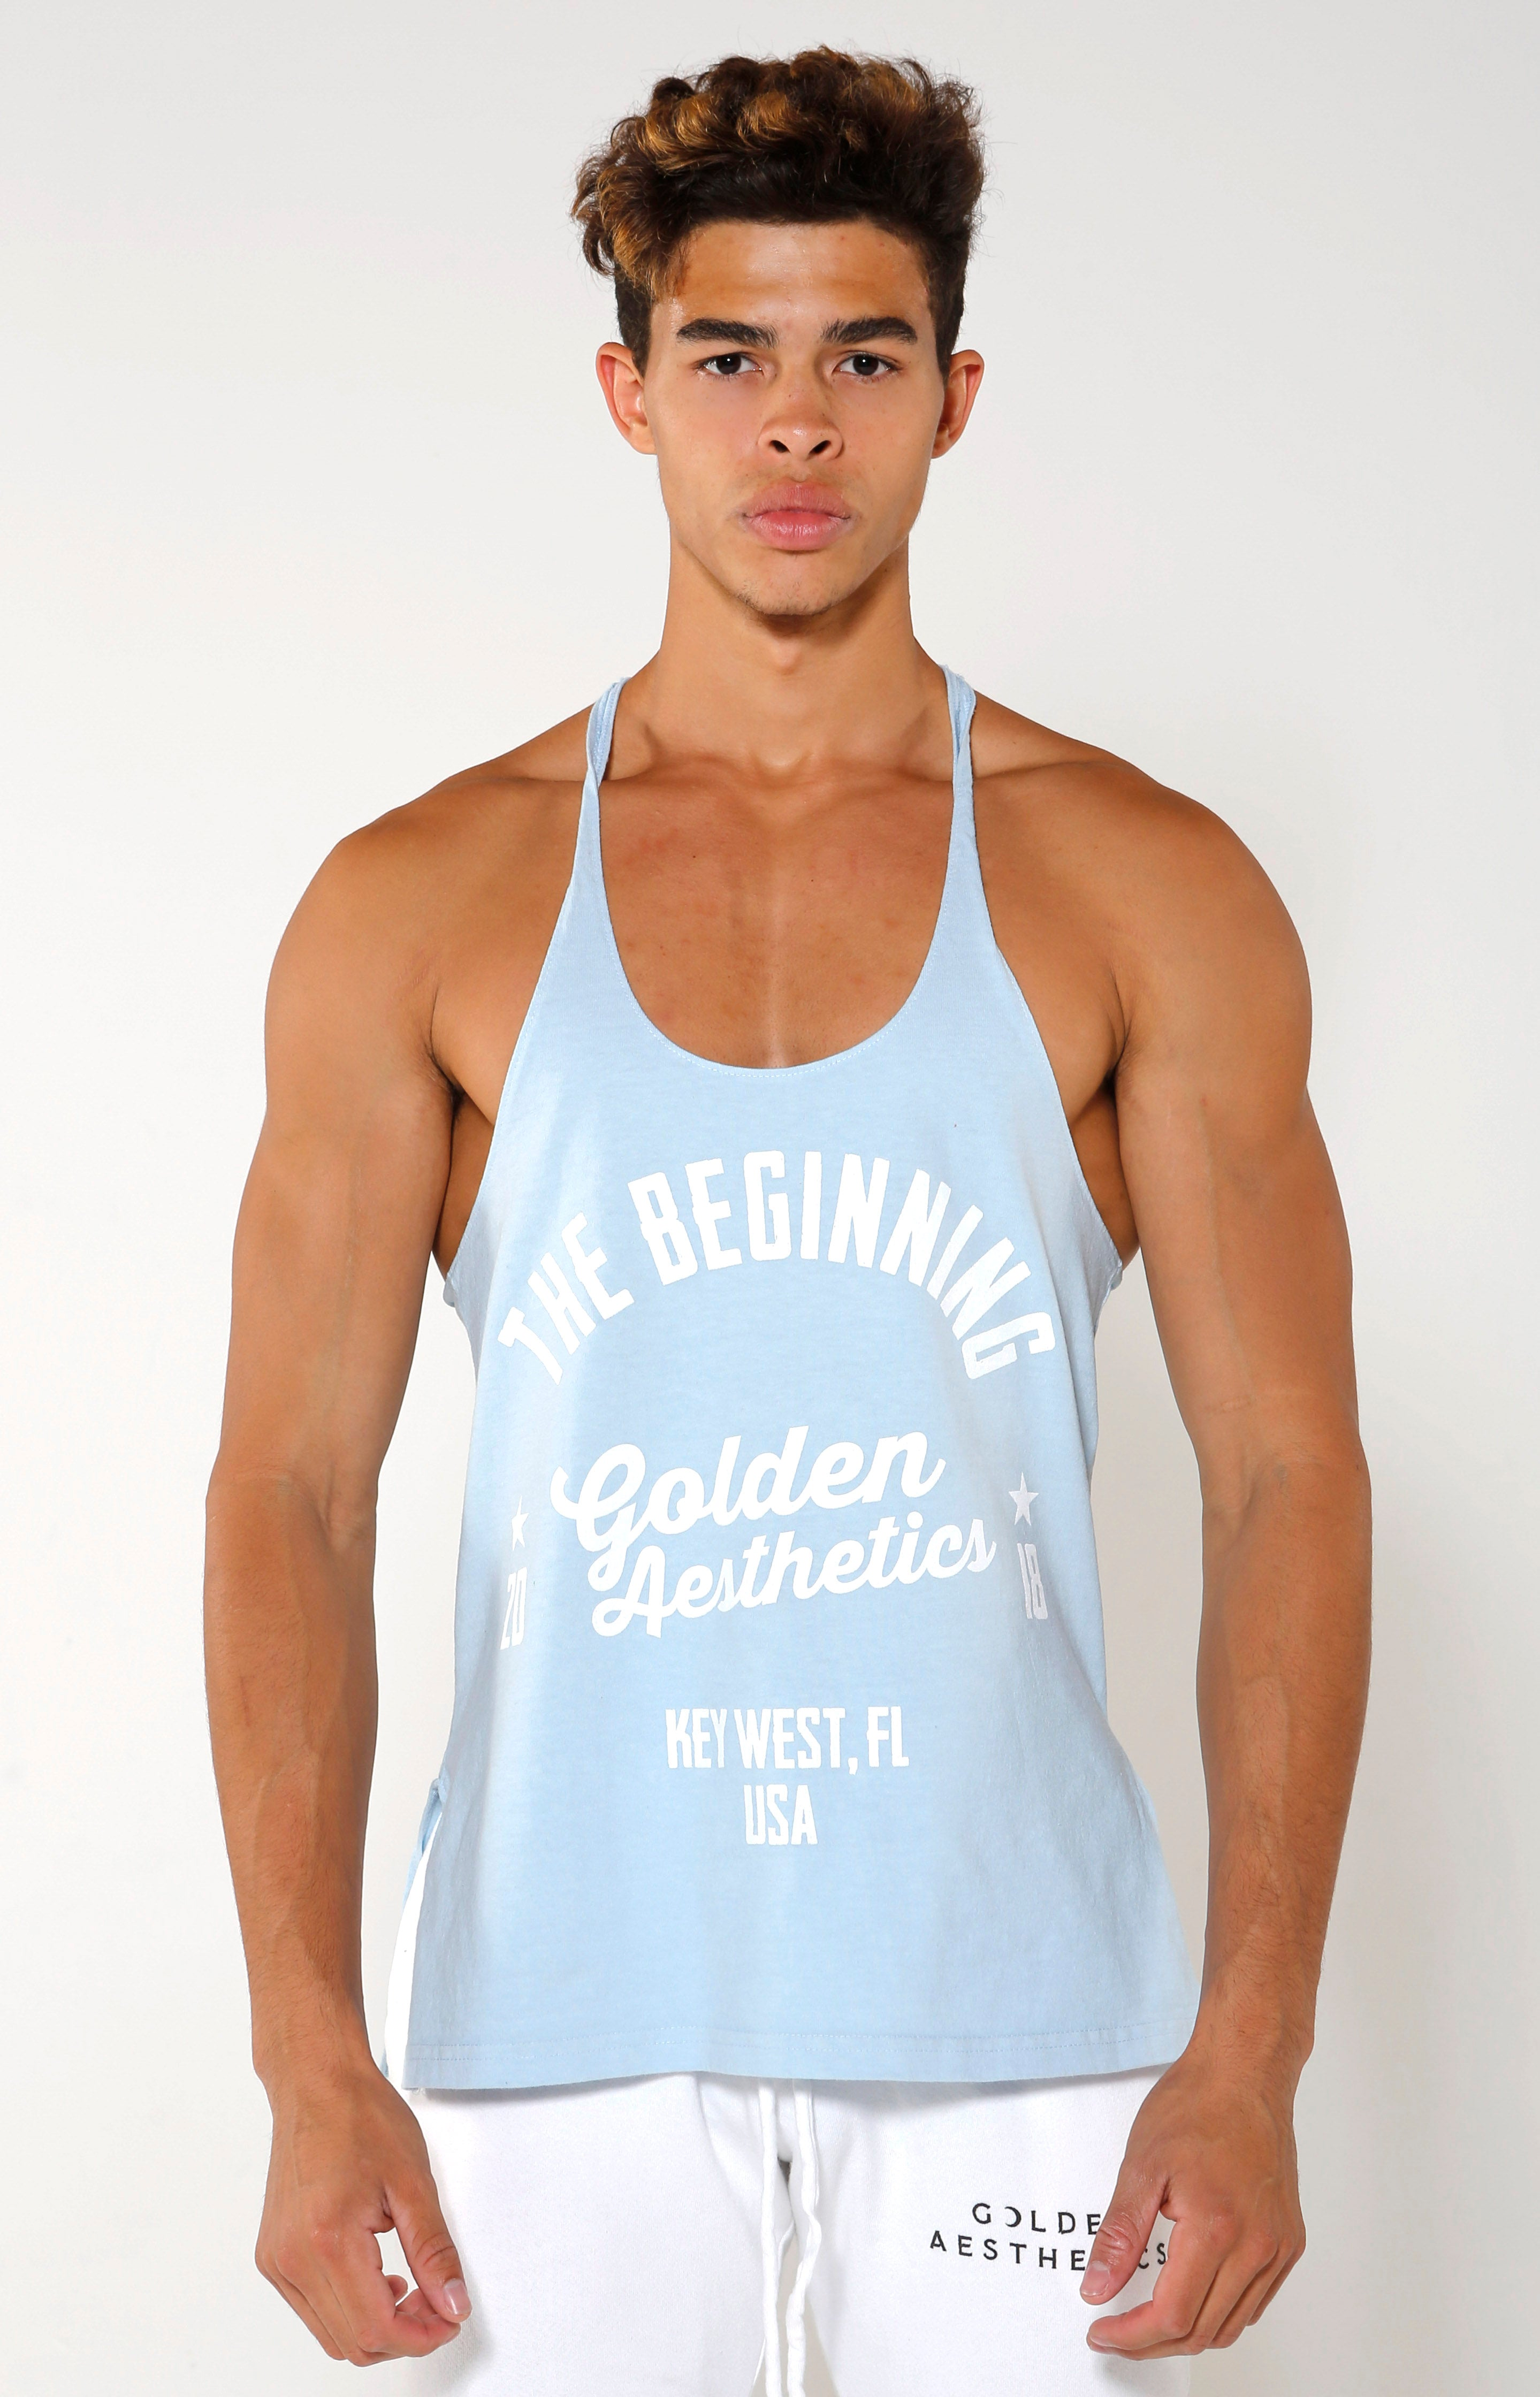 The Beginning Stringer - Baby Blue - Golden Aesthetics